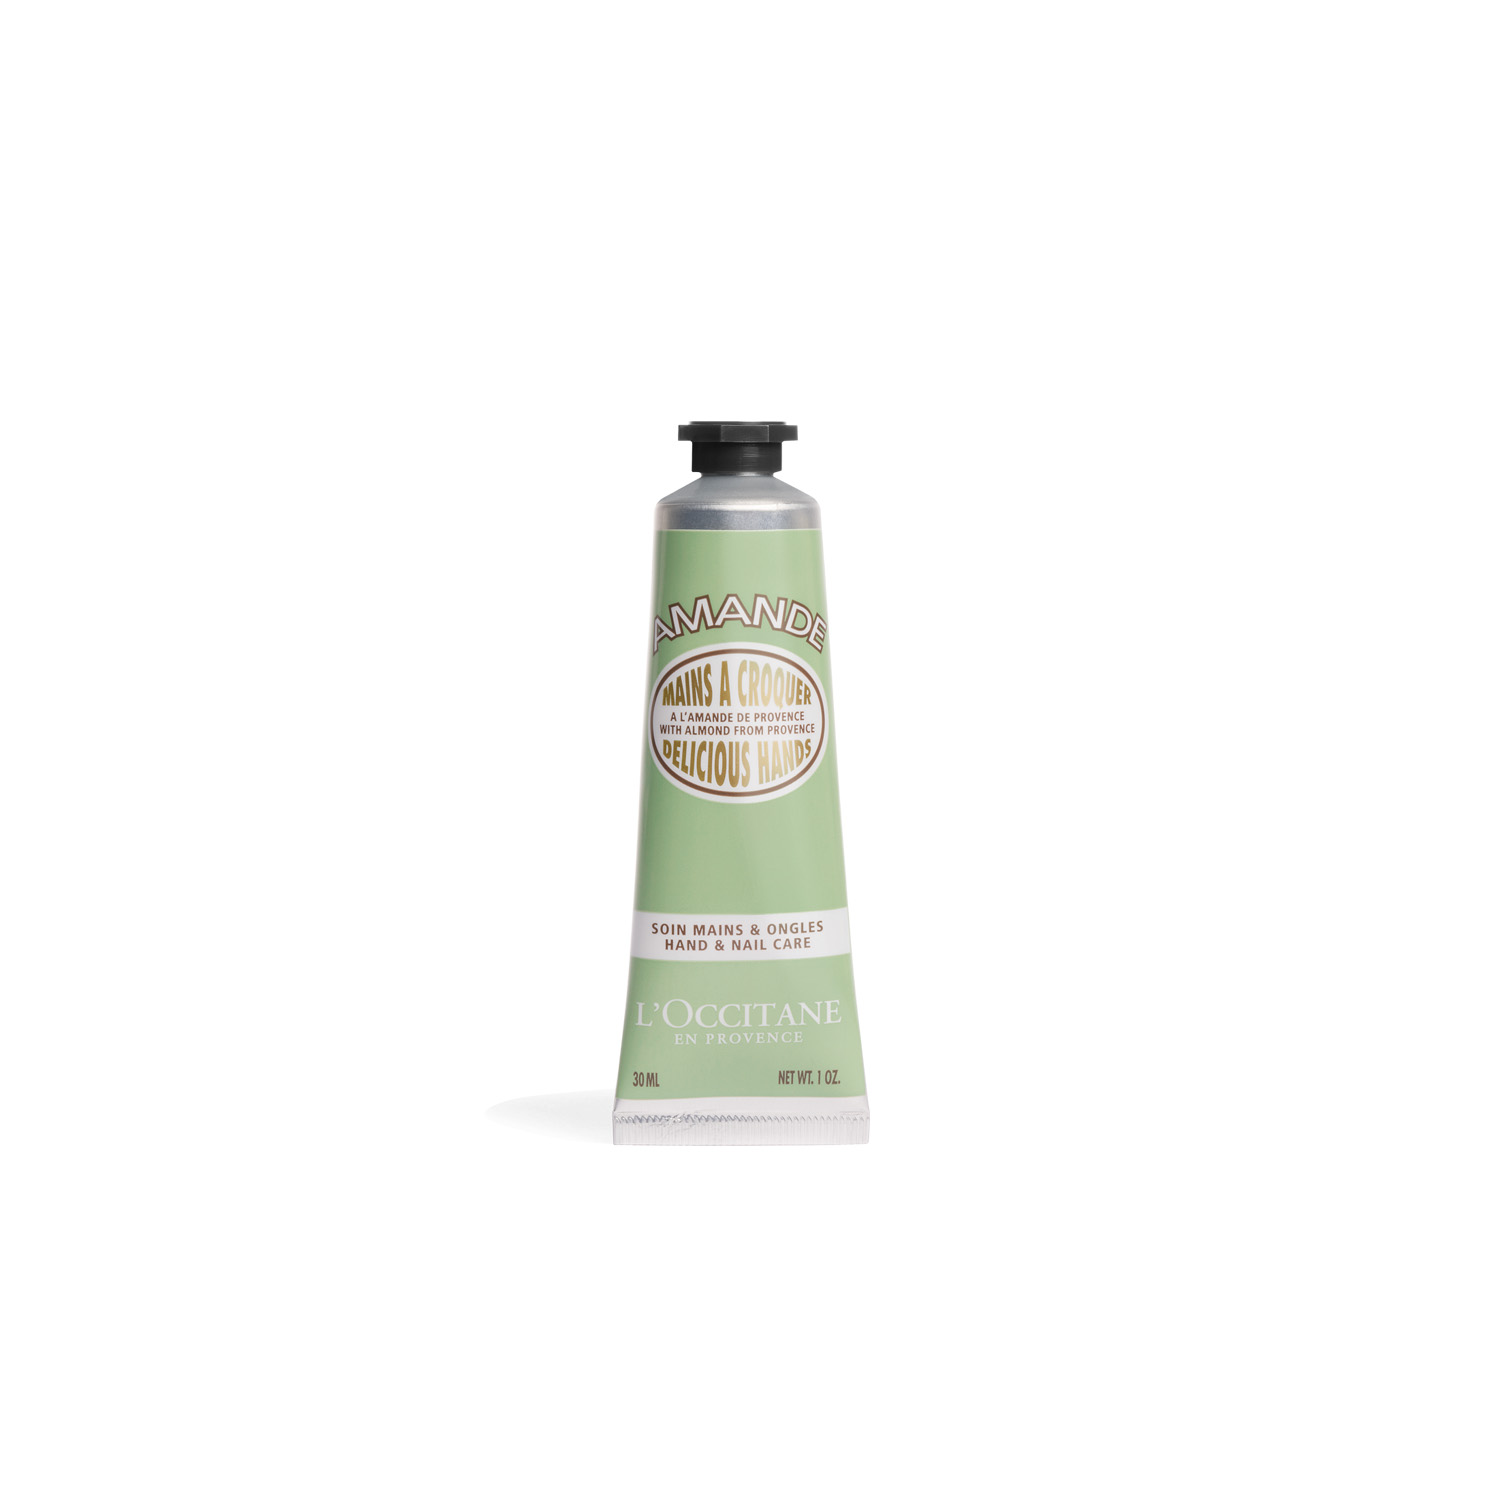 Almond Delicious Hands Cream 30ml